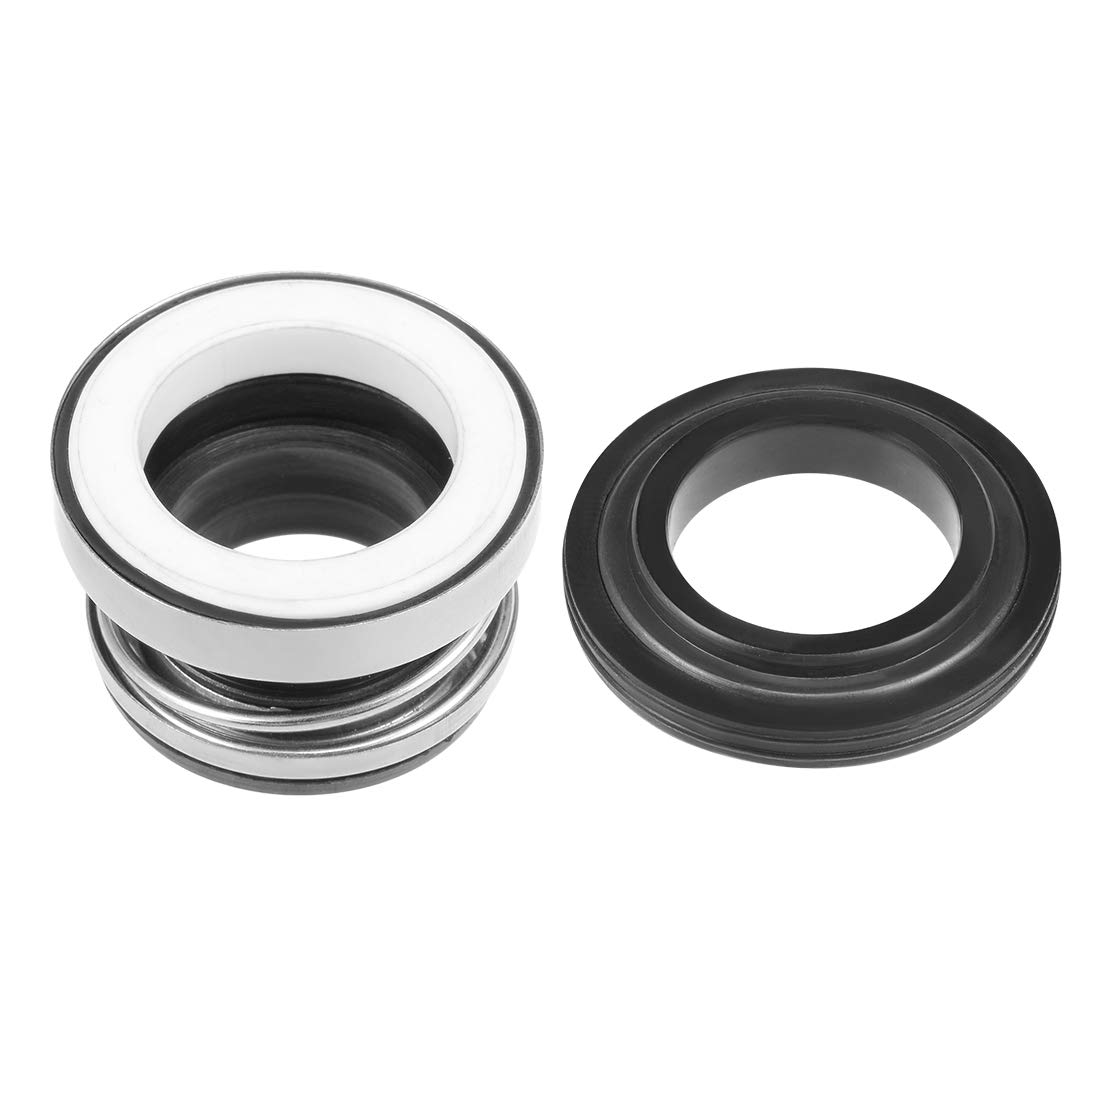 uxcell Mechanical Shaft Seal Replacement for Pool Spa Pump 103-17